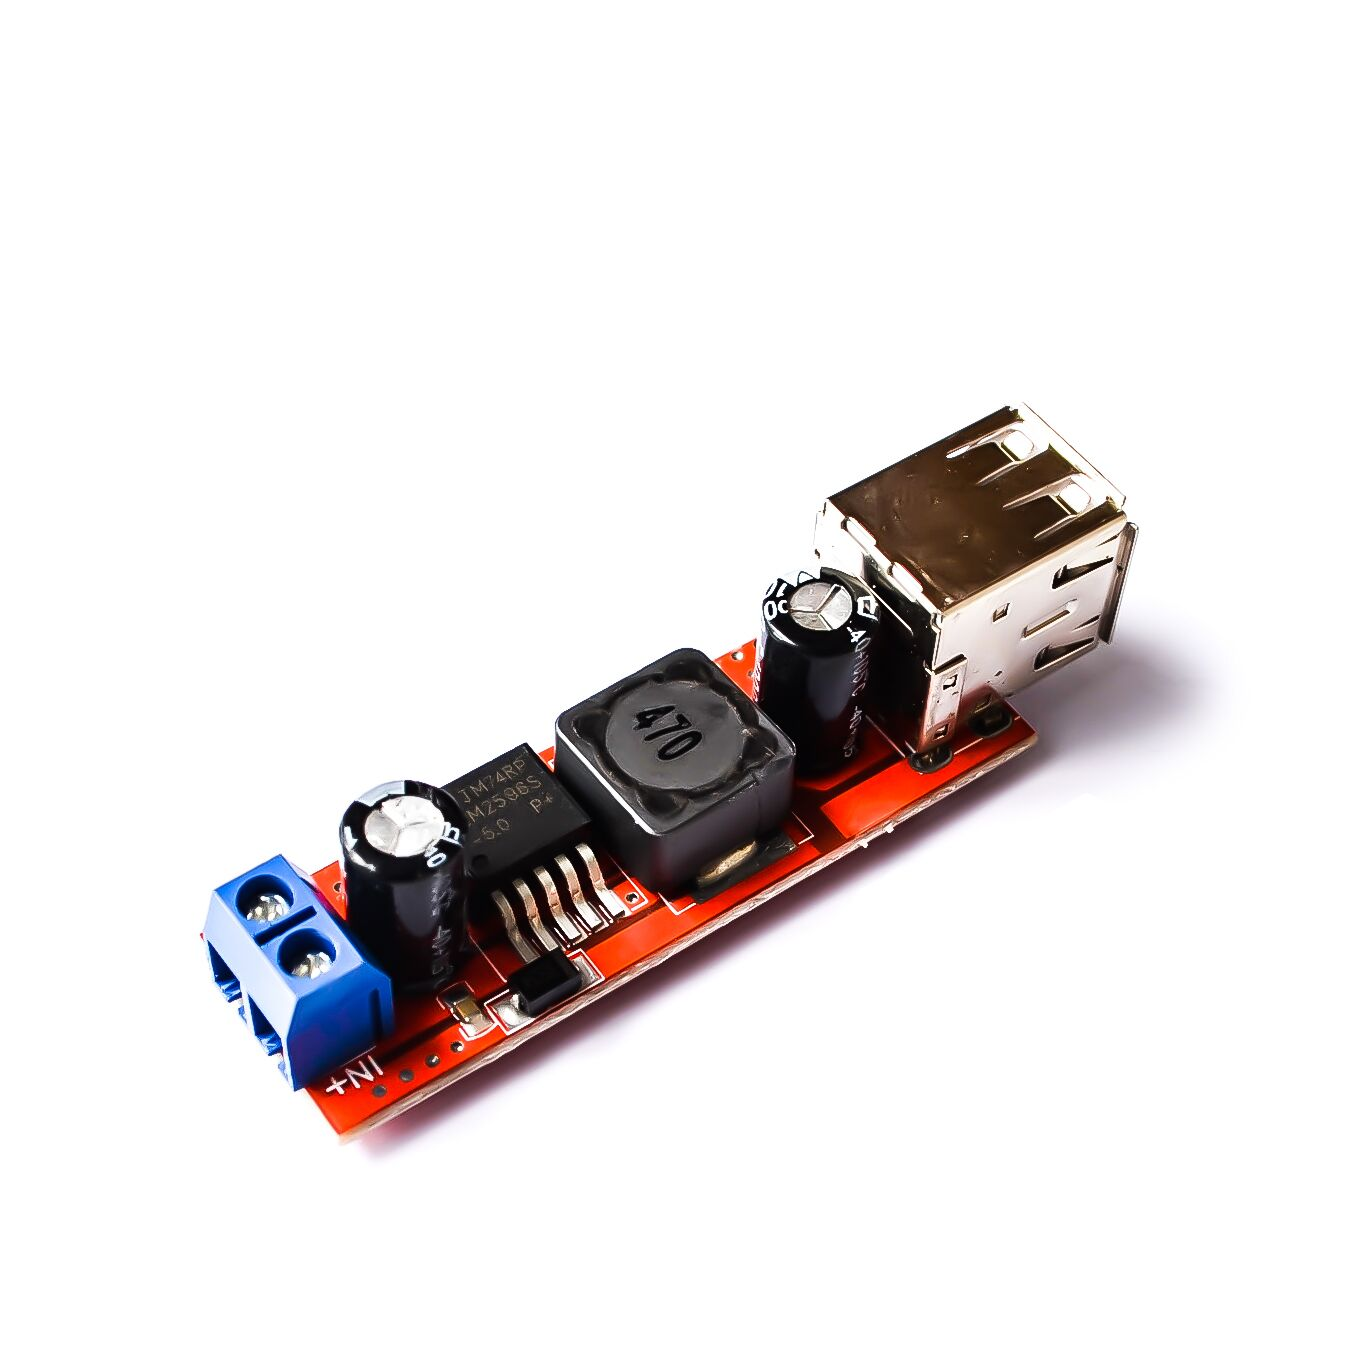 DC 6V-40V To 5V 3A Double USB Charge DC-DC Step-down Converter Module For Vehicle Charger LM2596 Dual USB